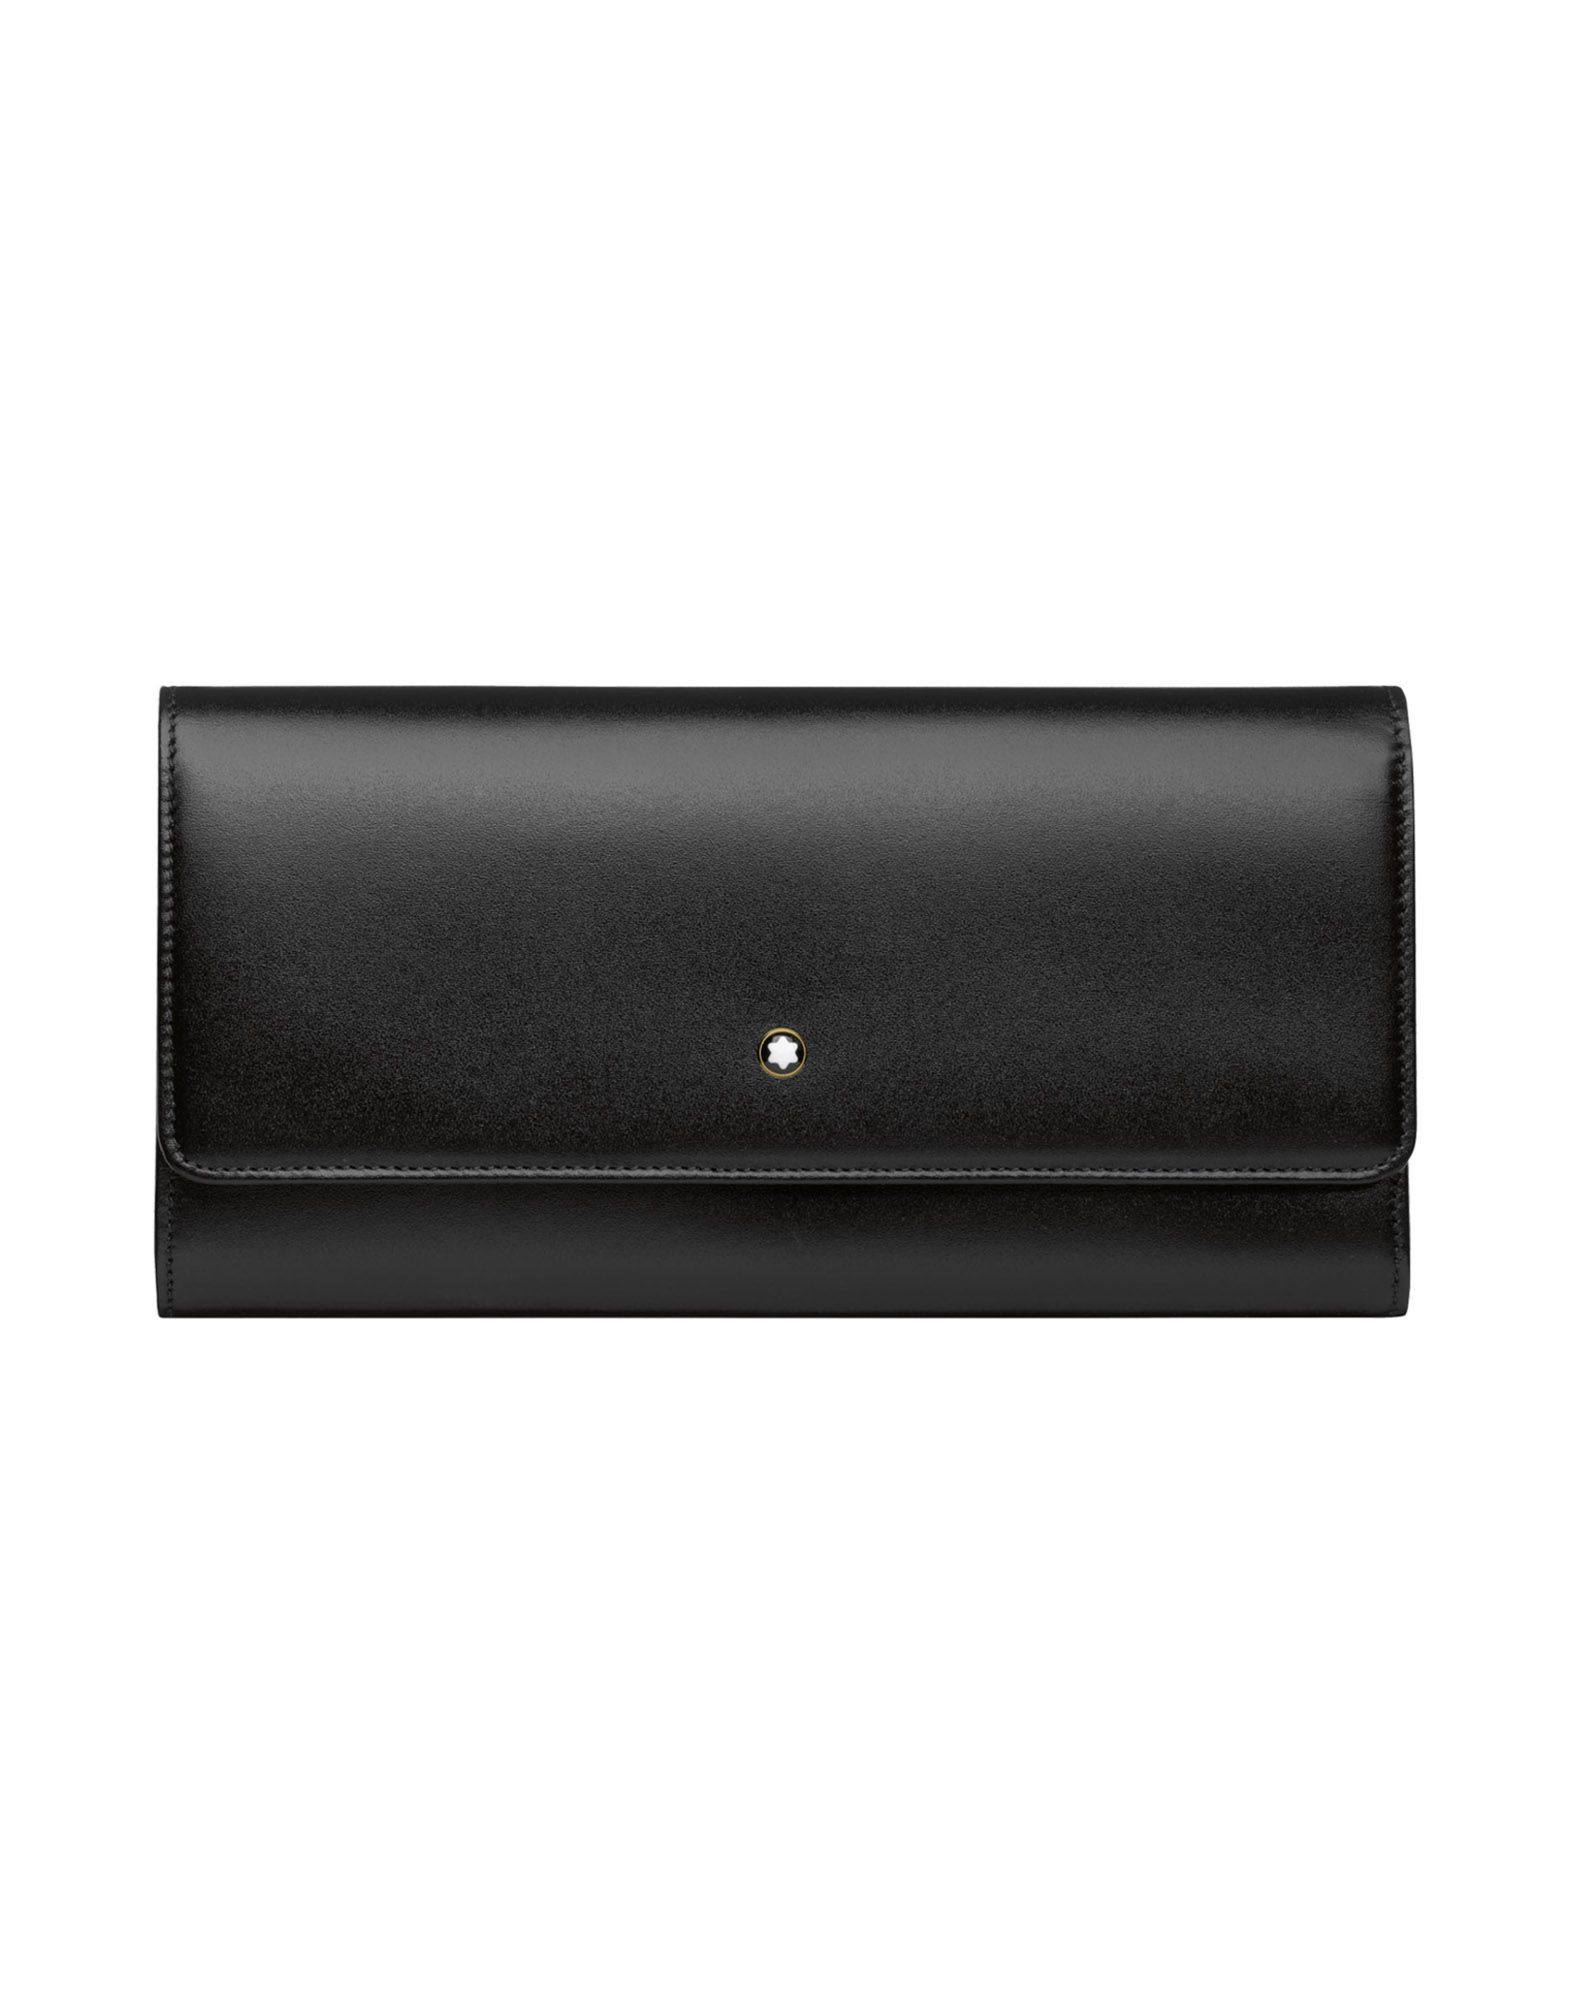 Portafoglio Montblanc Meisterstück Long Wallet 10 Cc With Flap - Donna - Acquista online su